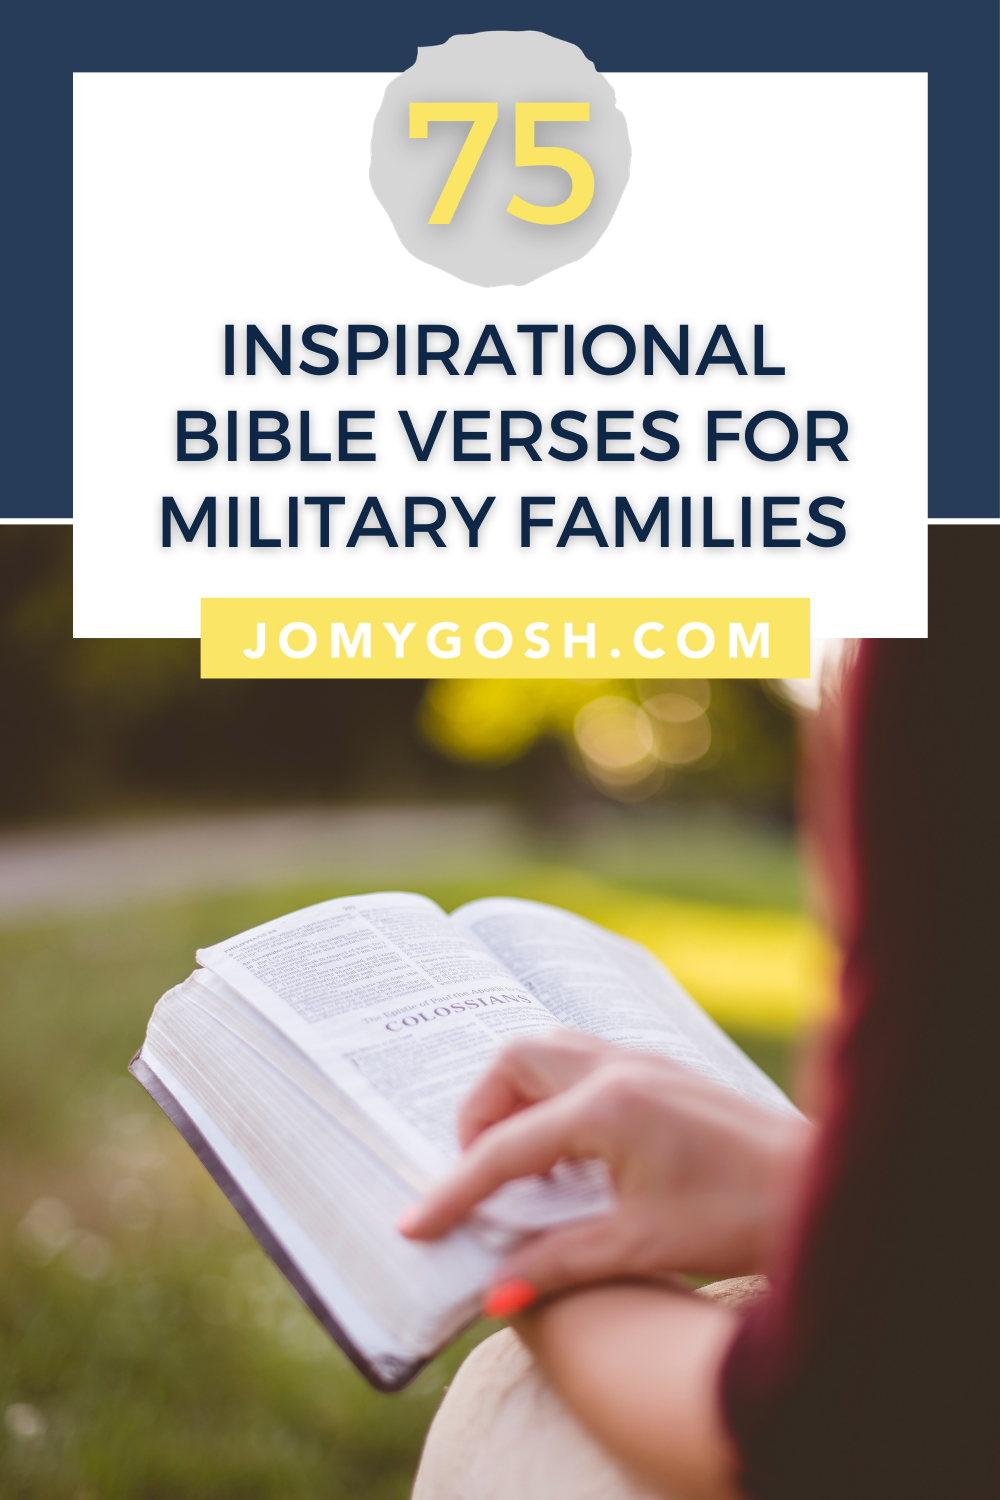 Use these inspiring bible verses to find calmness, inspiration, and meaning in military life. #christianity #christian #bible #bibleverse #bibleverses #milfam #militaryfamily #inspiring #inspiration #militarylife #military